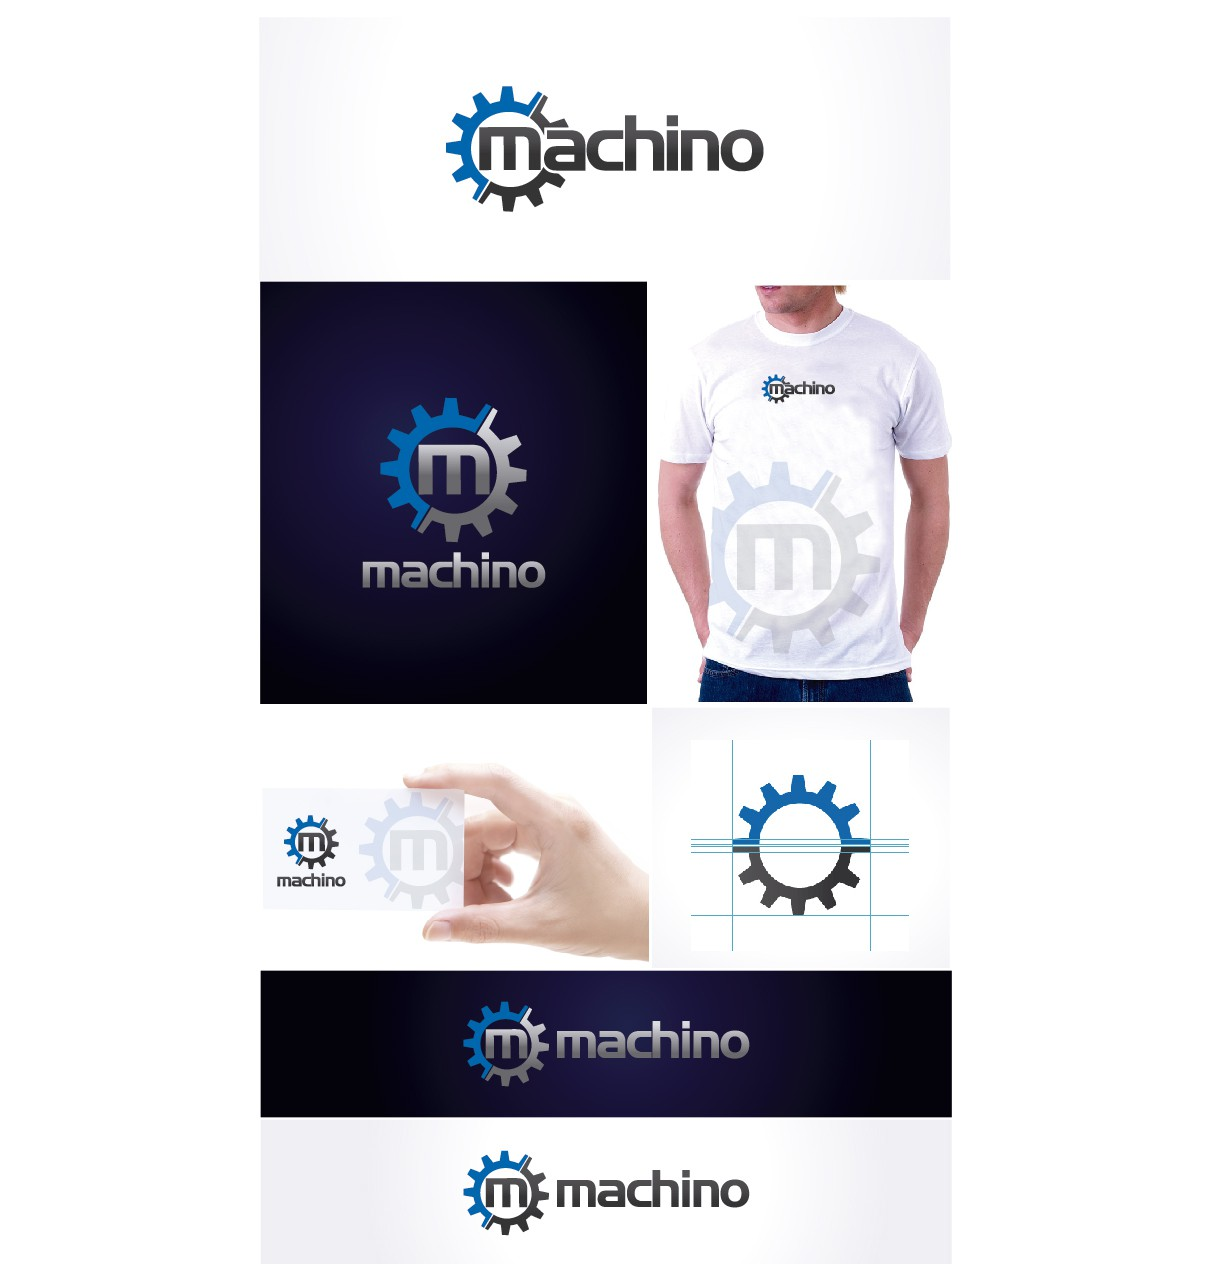 New logo wanted for Machino